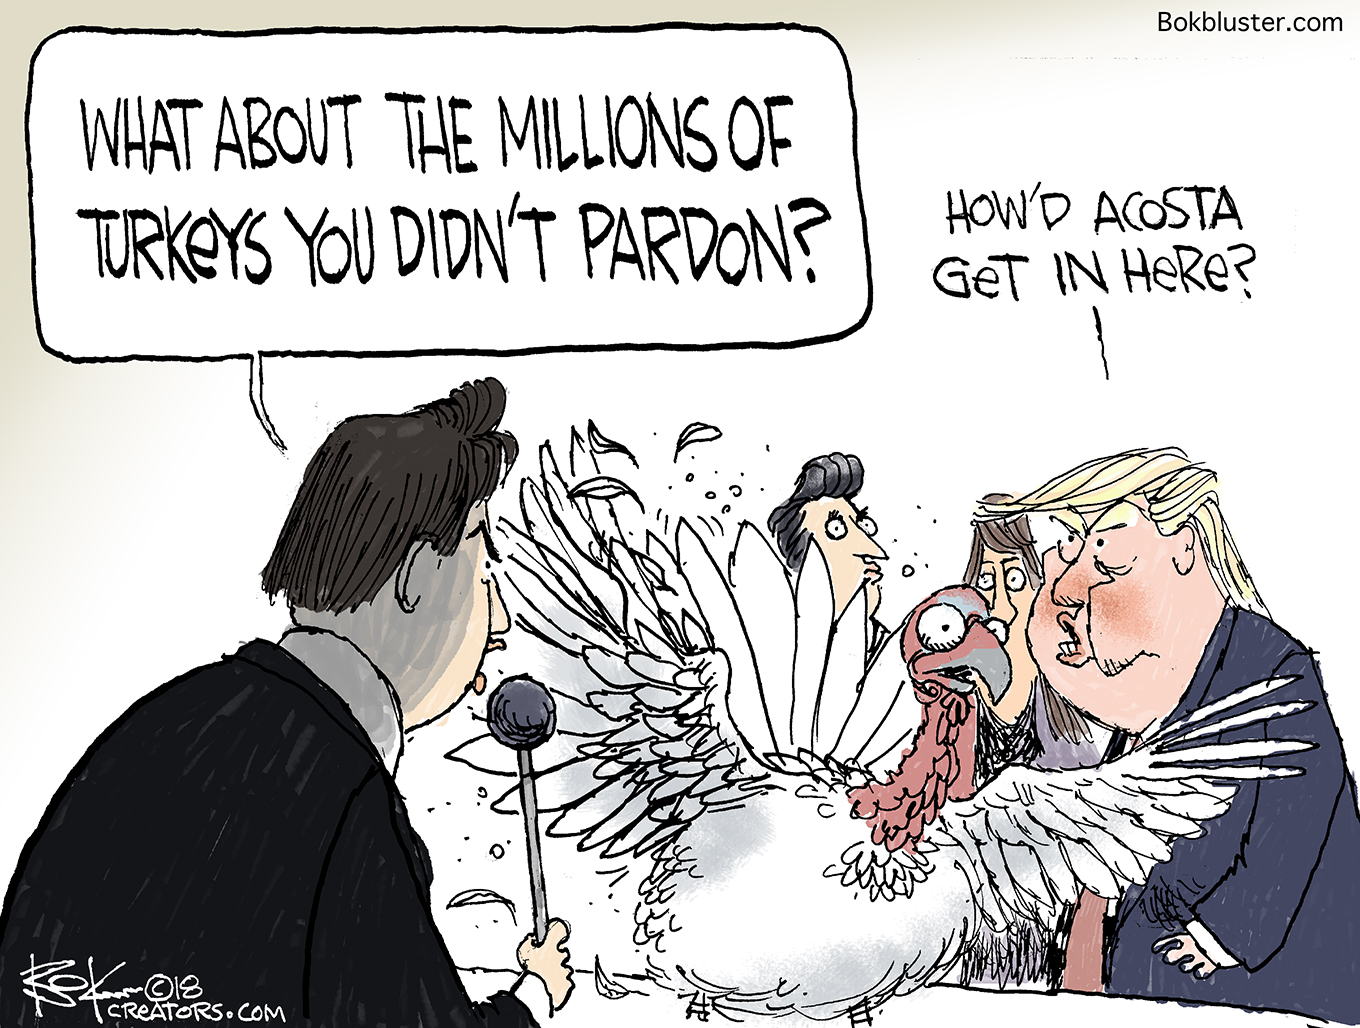 media, acosta, thanksgiving turkey, pardon